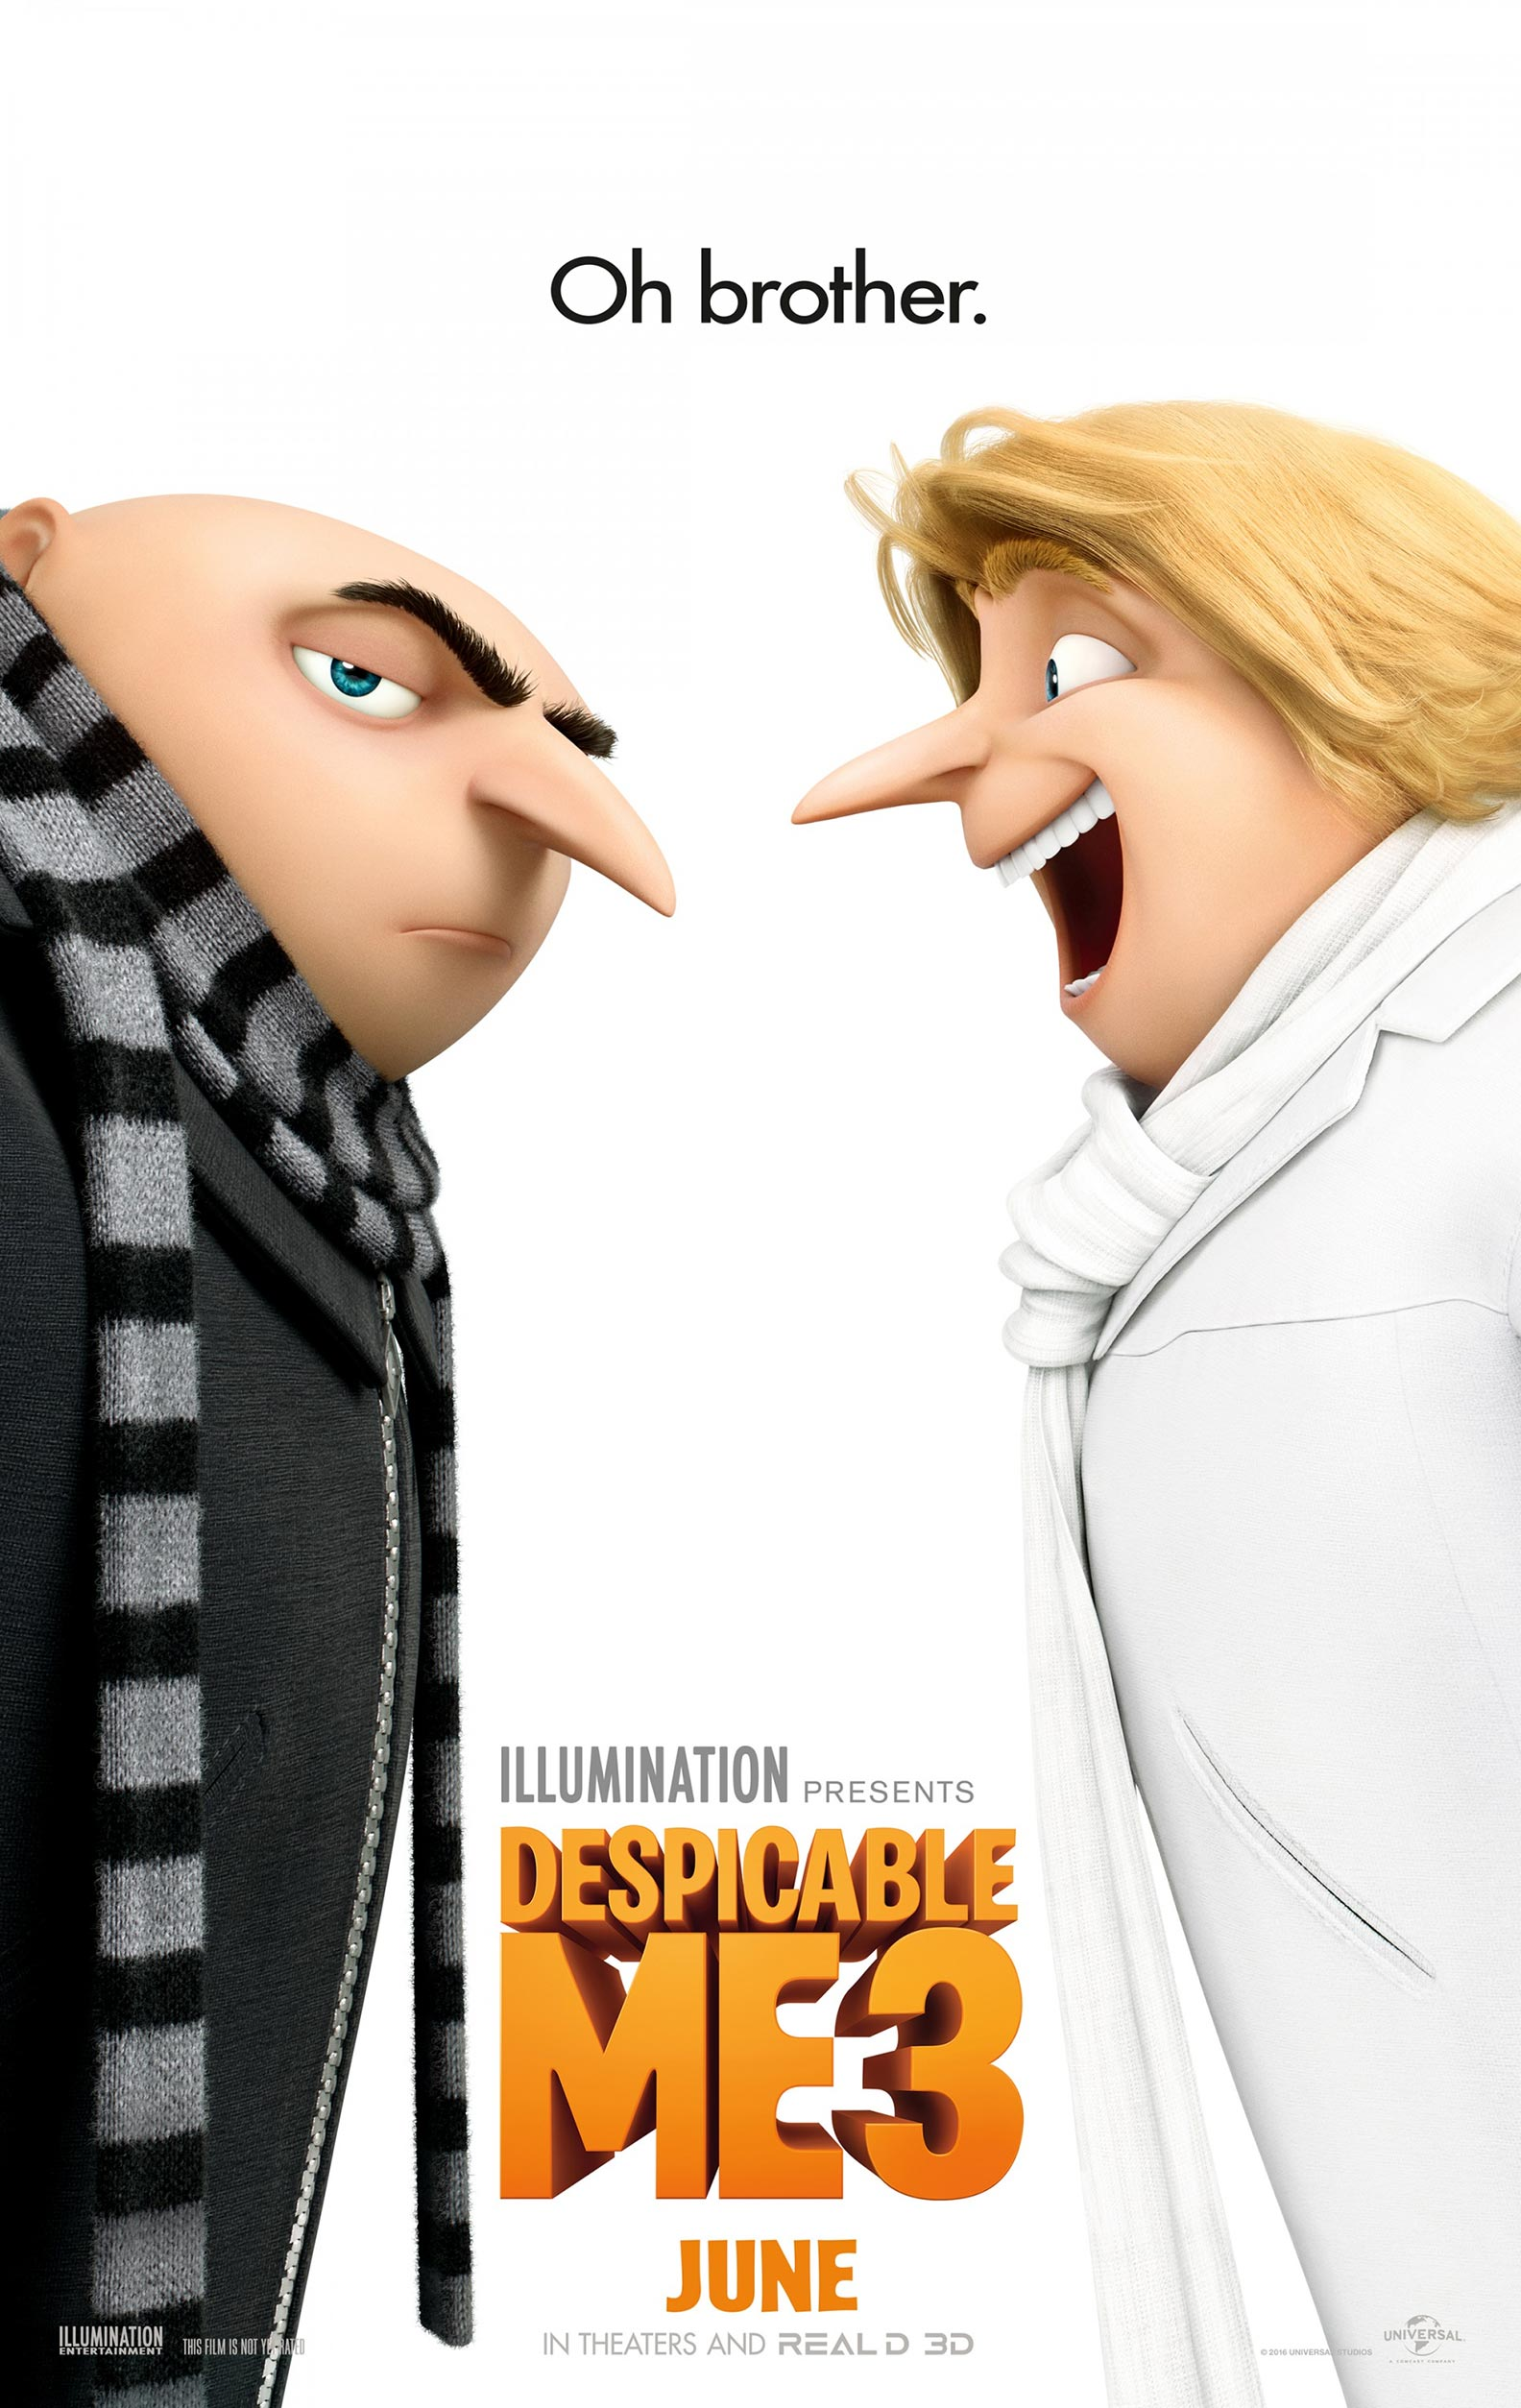 Despicable Me 3 Poster #2